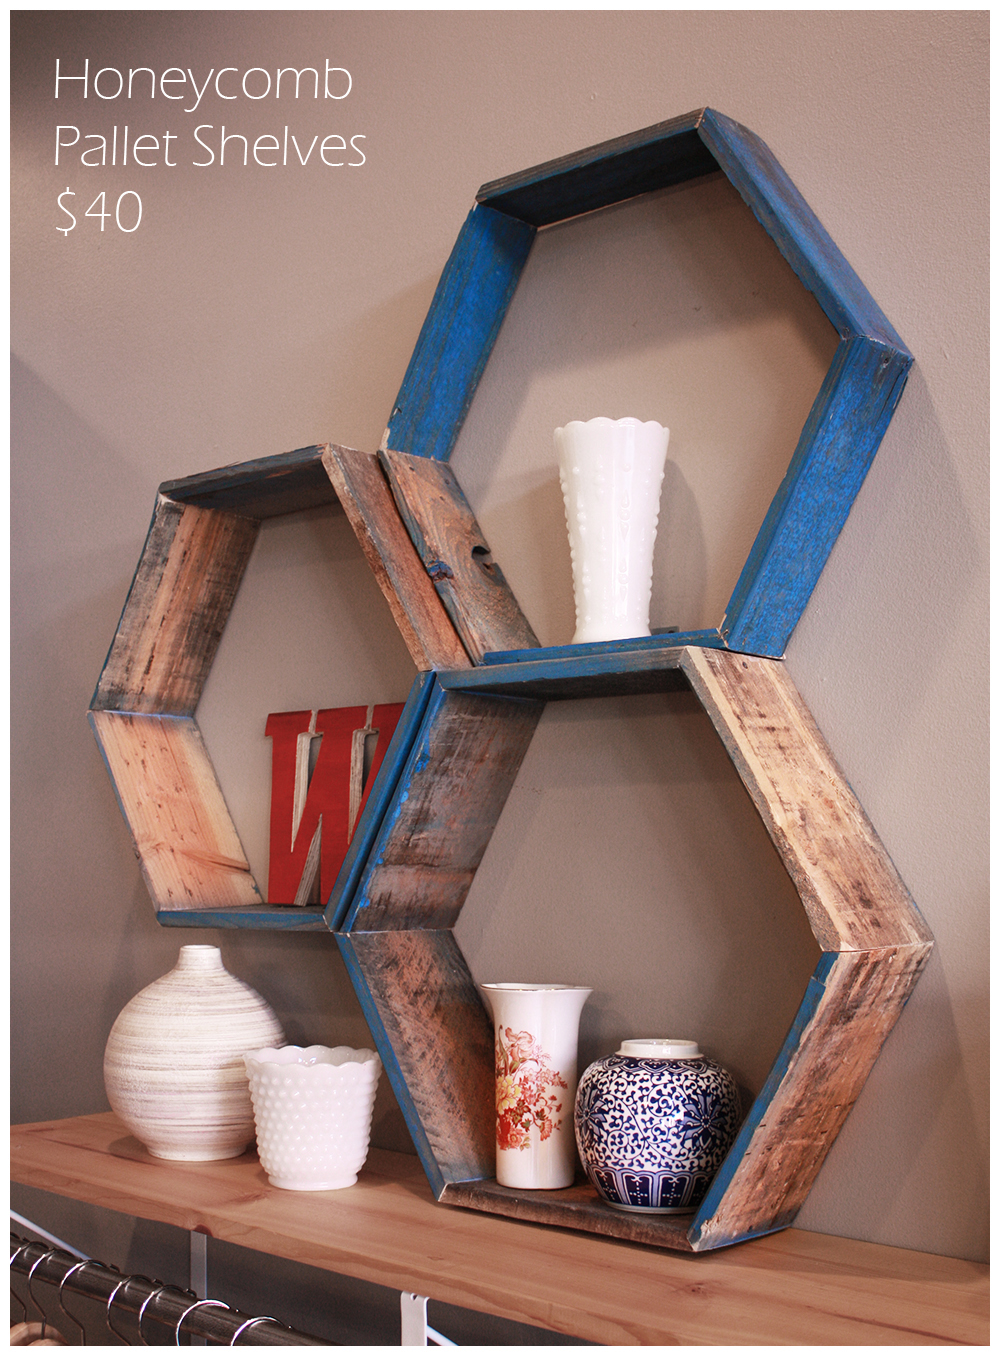 Honeycomb Pallet Shelves $40